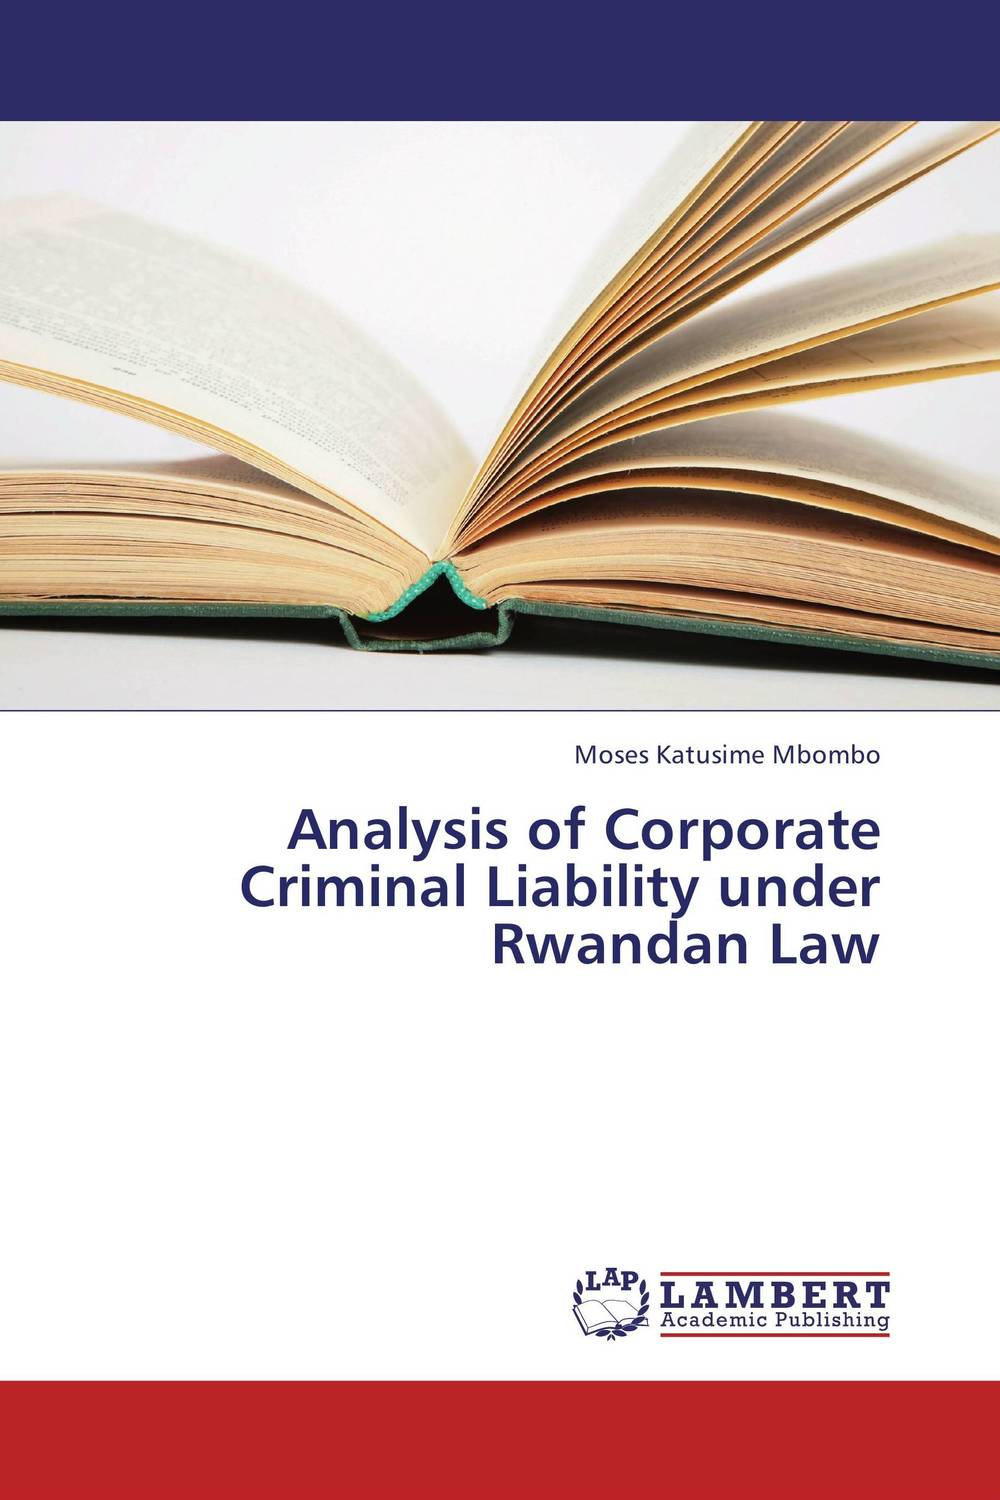 Analysis of Corporate Criminal Liability under Rwandan Law toby bishop j corporate resiliency managing the growing risk of fraud and corruption